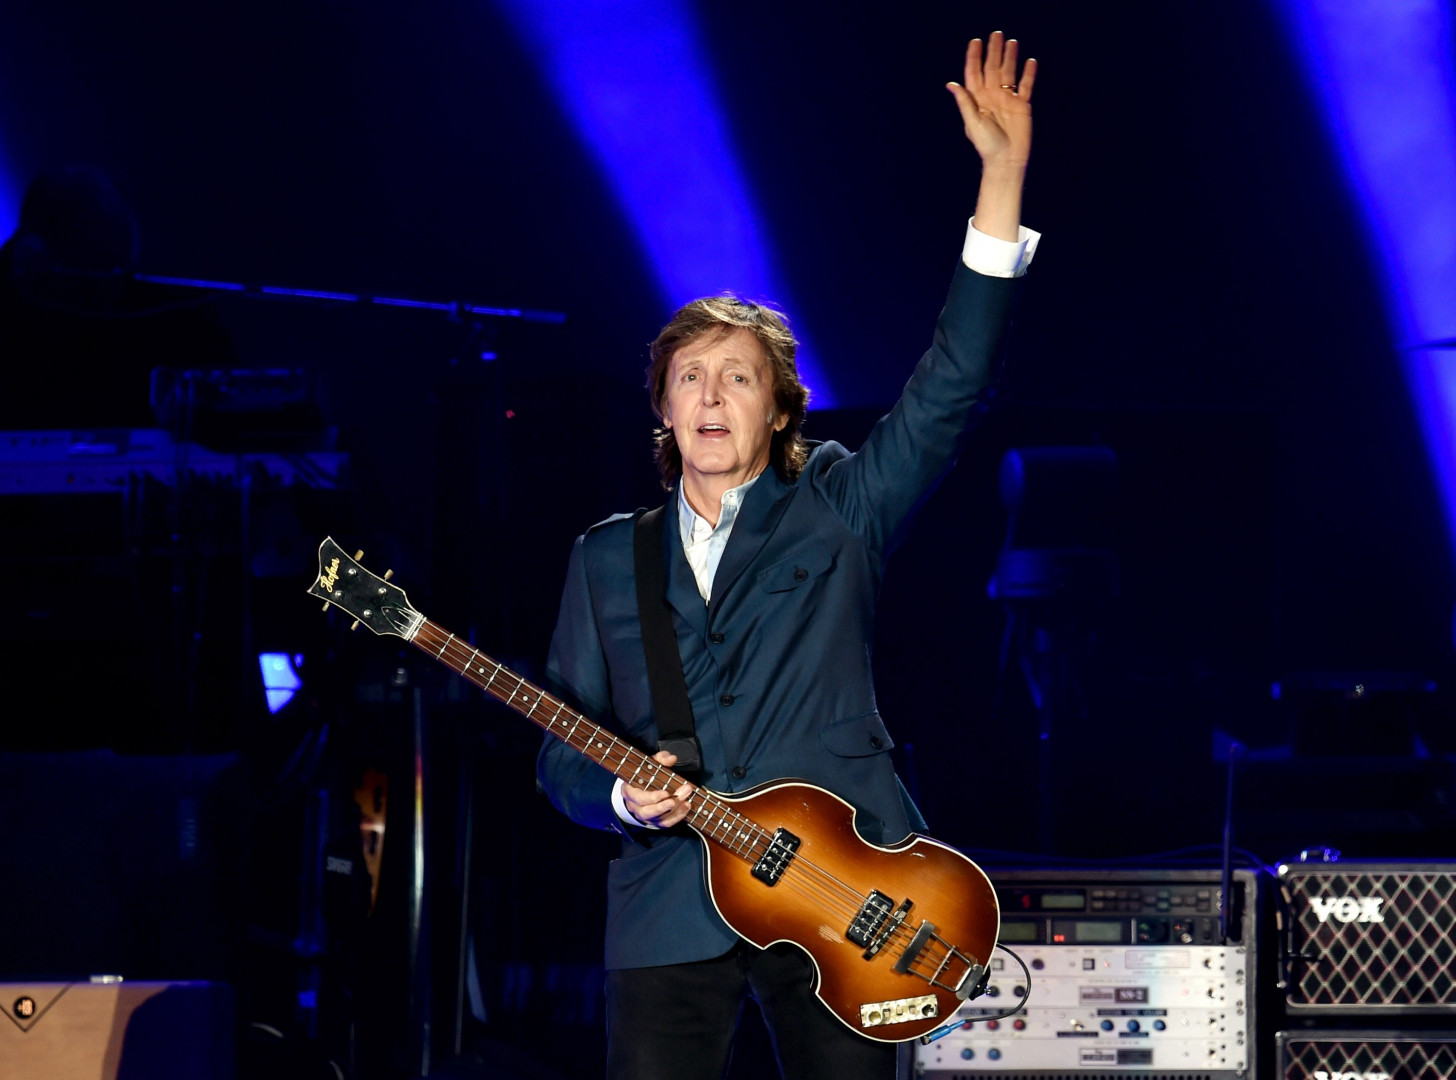 2. Paul McCartney avec 660 millions de dollars